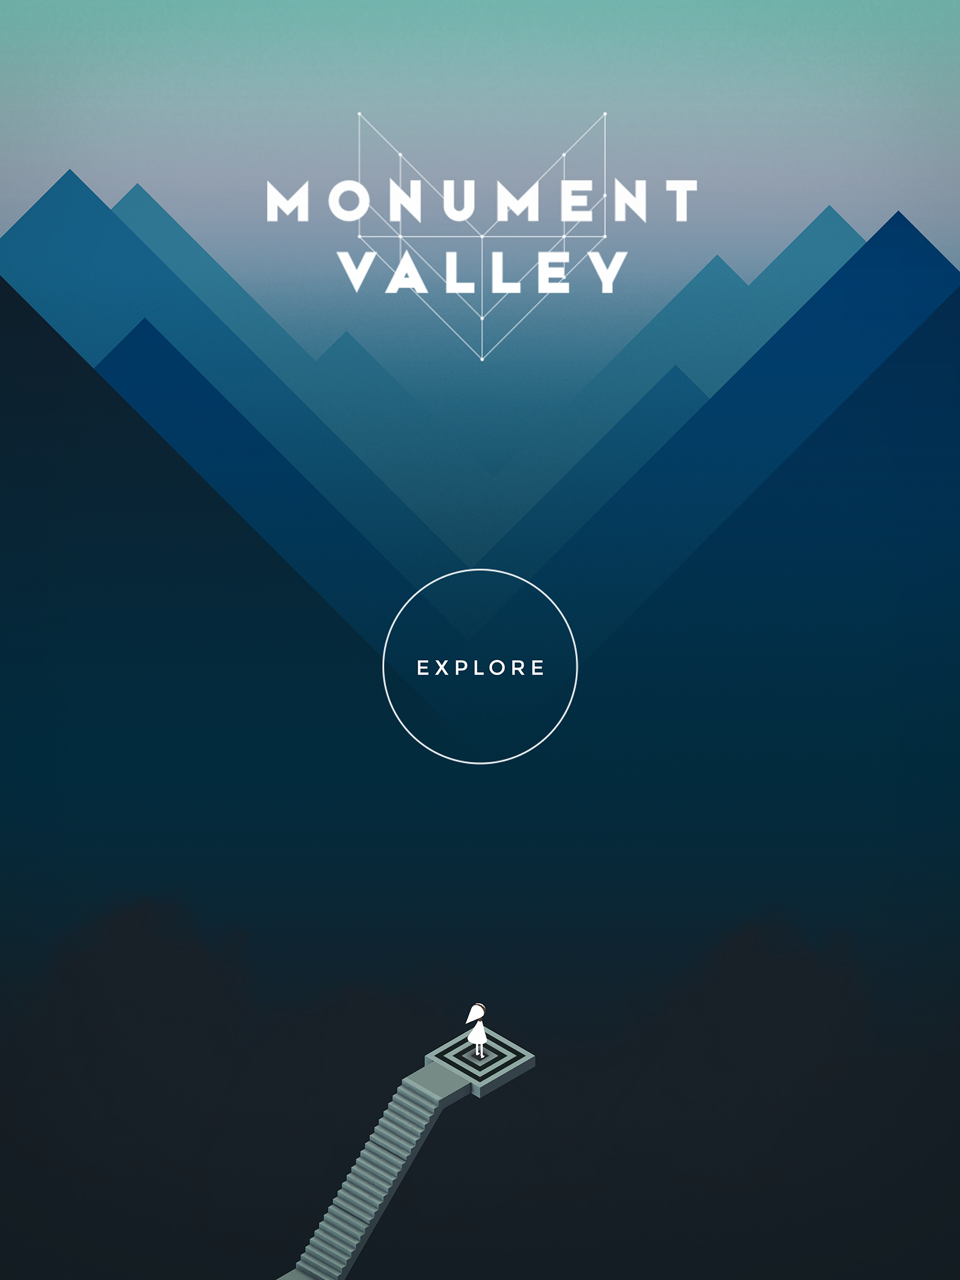 mv_oct13_01_0.png - Monument Valley: a beautiful new app from ustwo - 5970